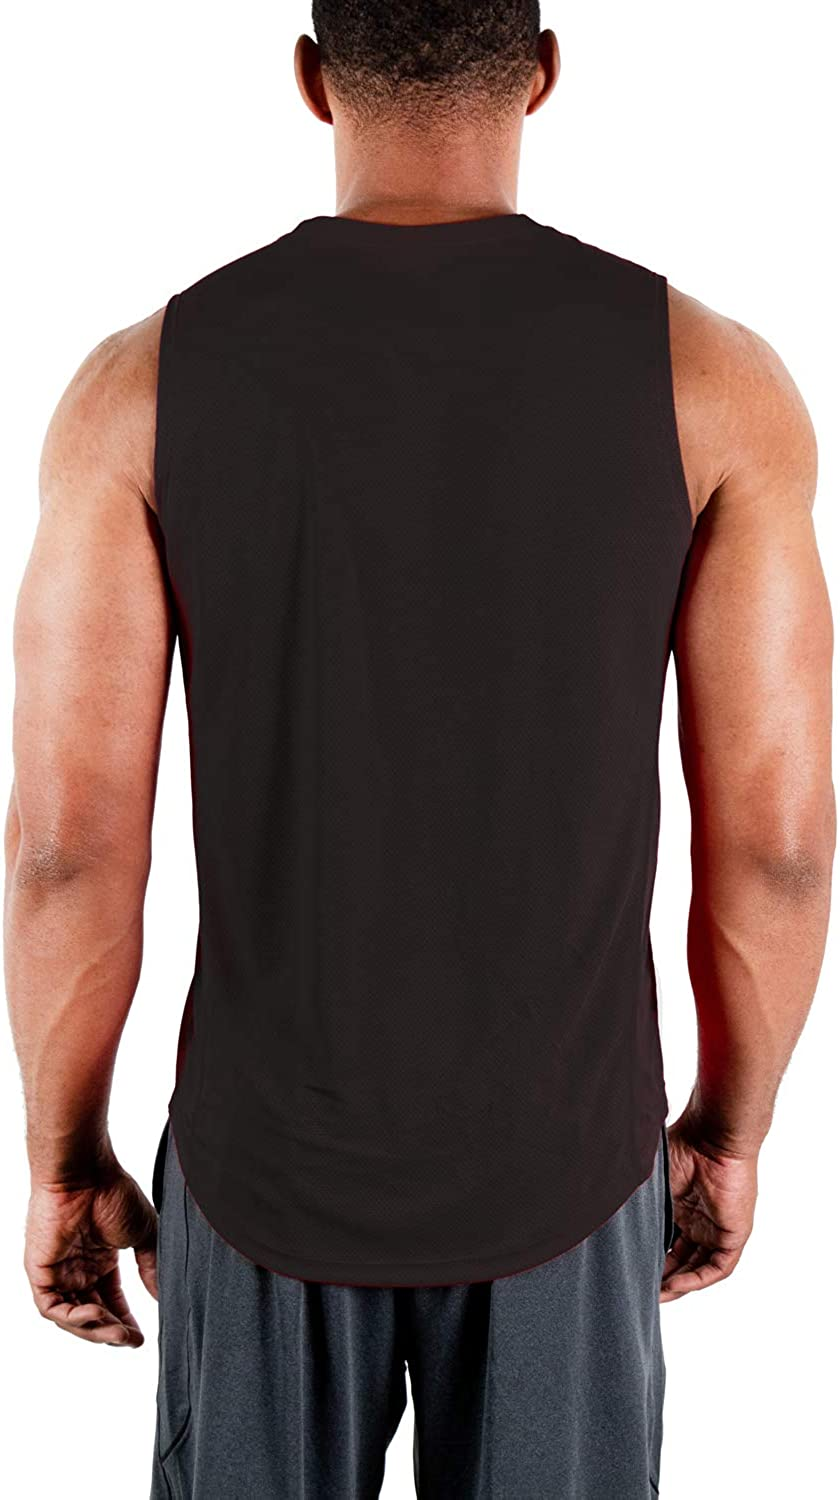 DEVOPS 3 Pack Men's Muscle Shirts Sleeveless Dri Fit Gym Workout Tank Top: Clothing